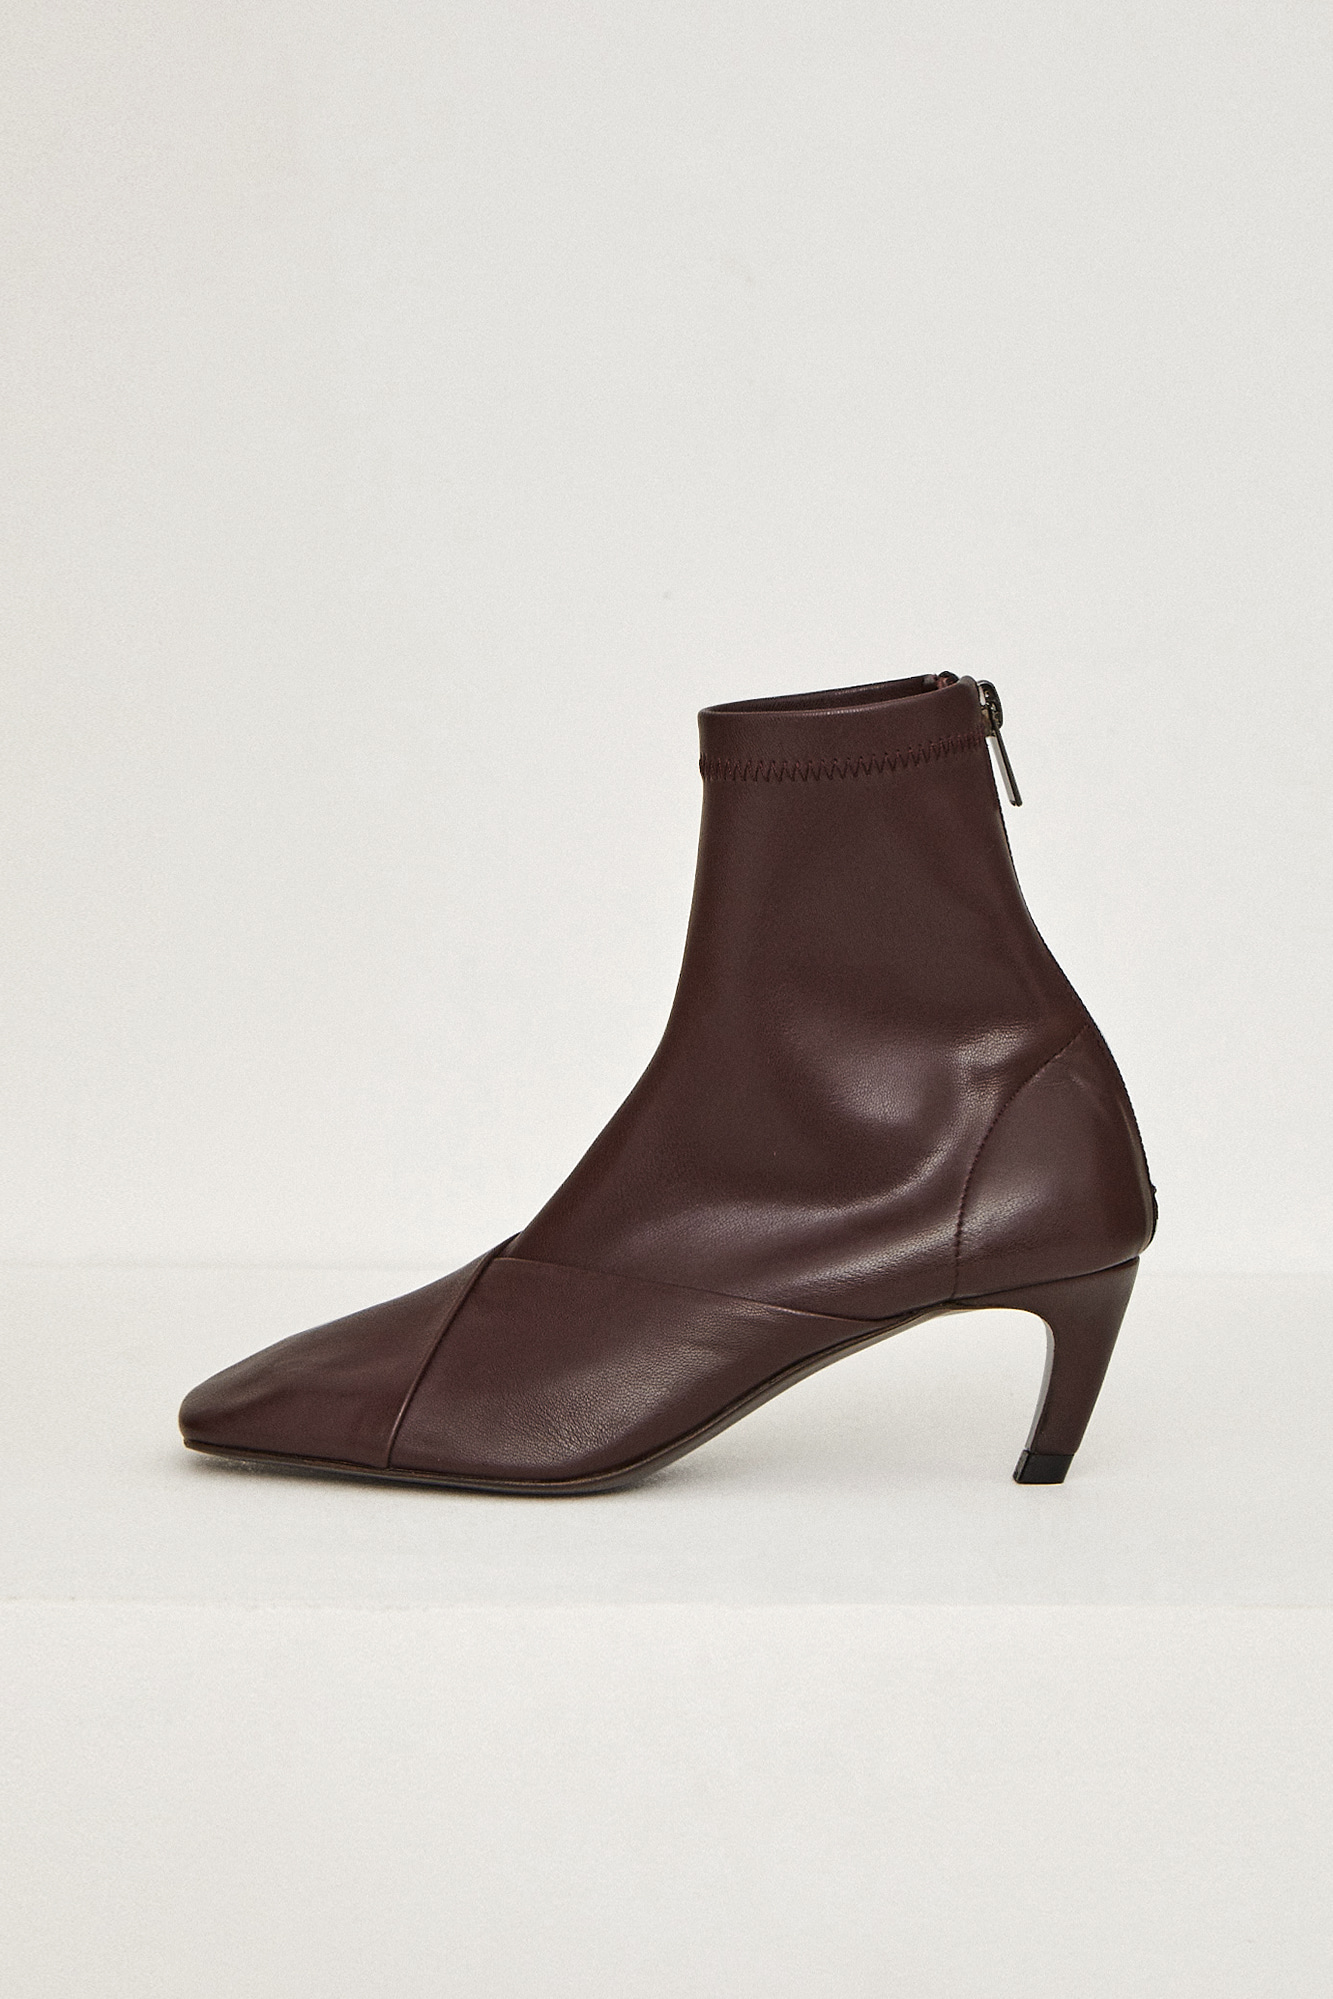 19FW SQUARE BOOTS - BURGUNDY